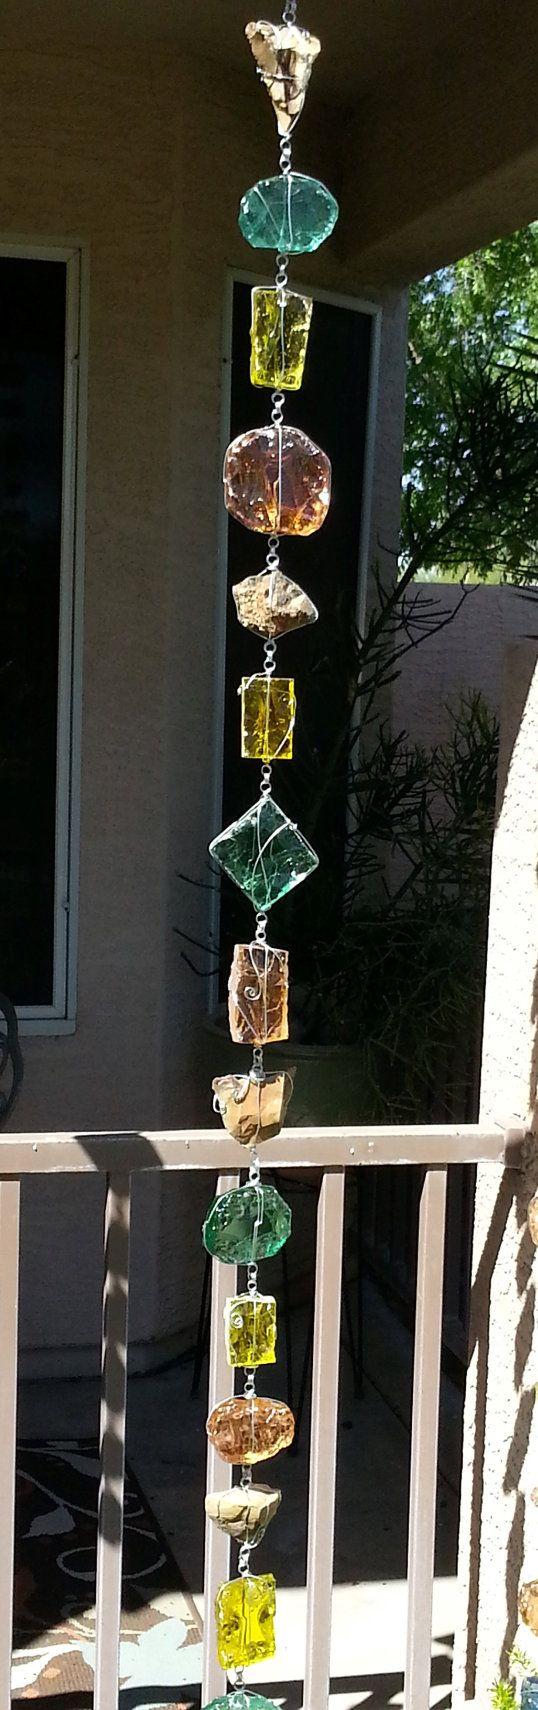 Hey, I found this really awesome Etsy listing at https://www.etsy.com/listing/226342172/glass-rain-chain-peach-green-and-yellow